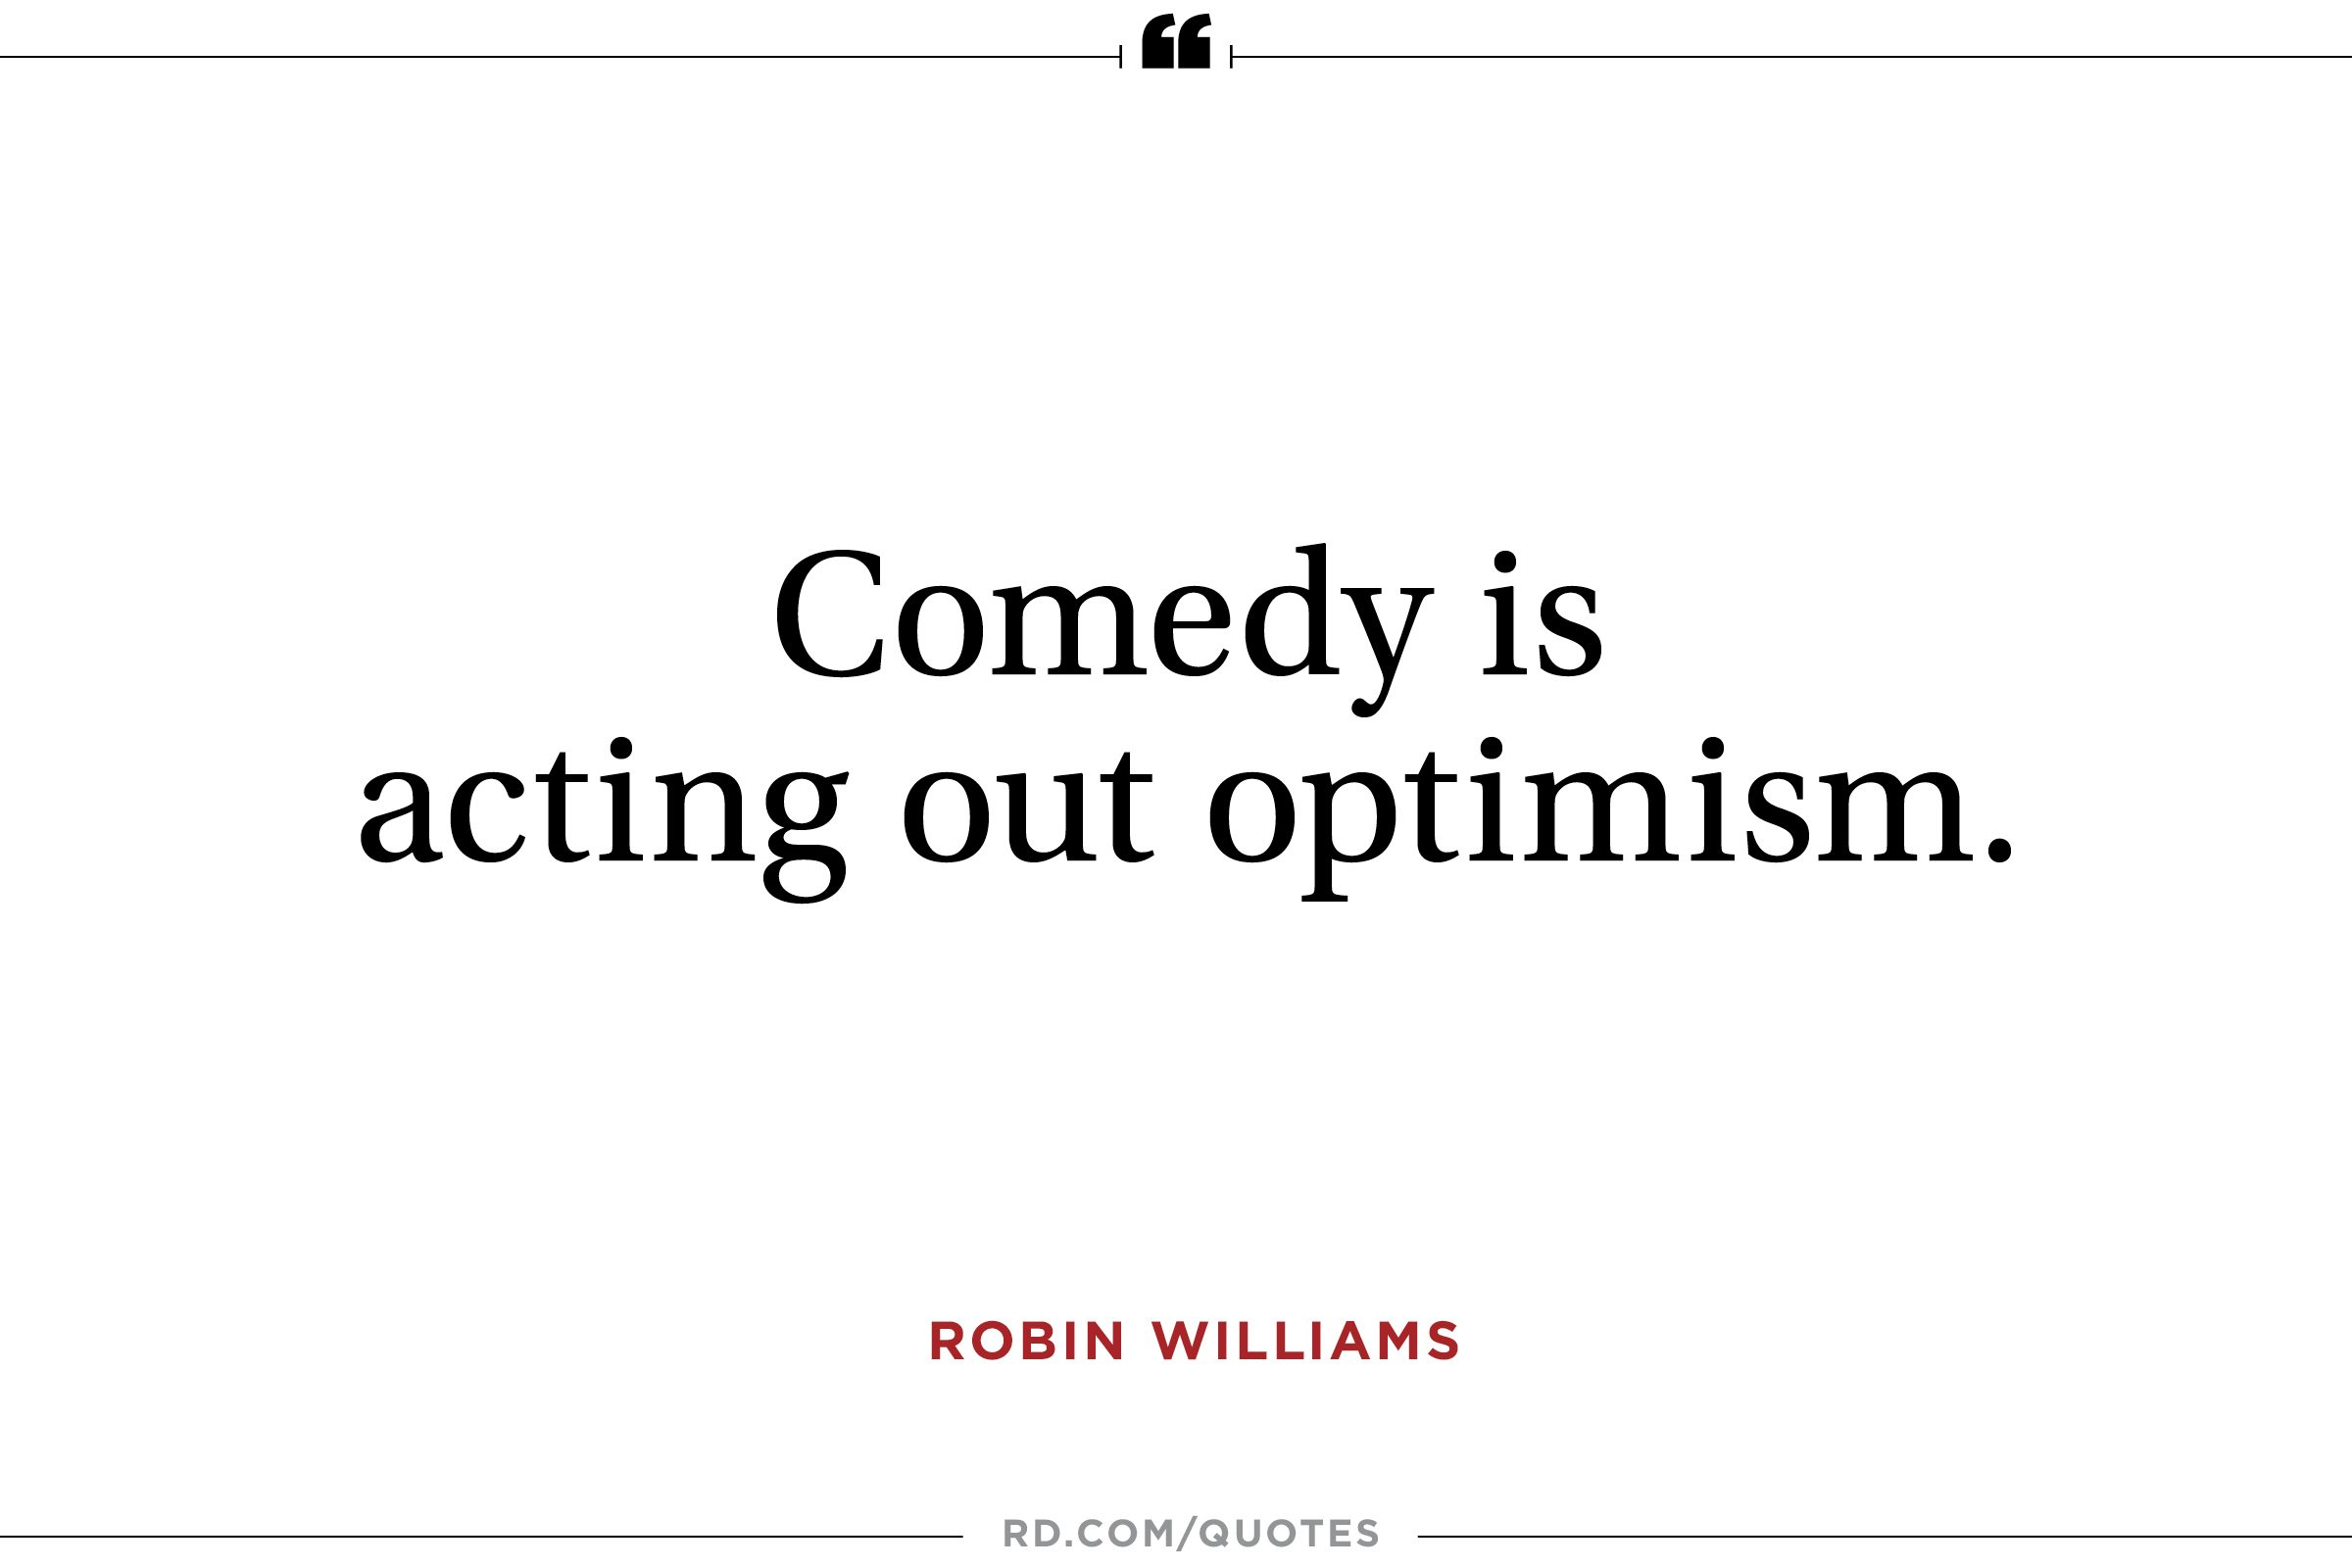 Quotes About Optimism 8 Robin Williams Quotes That Show His Wit And Heart  Reader's Digest